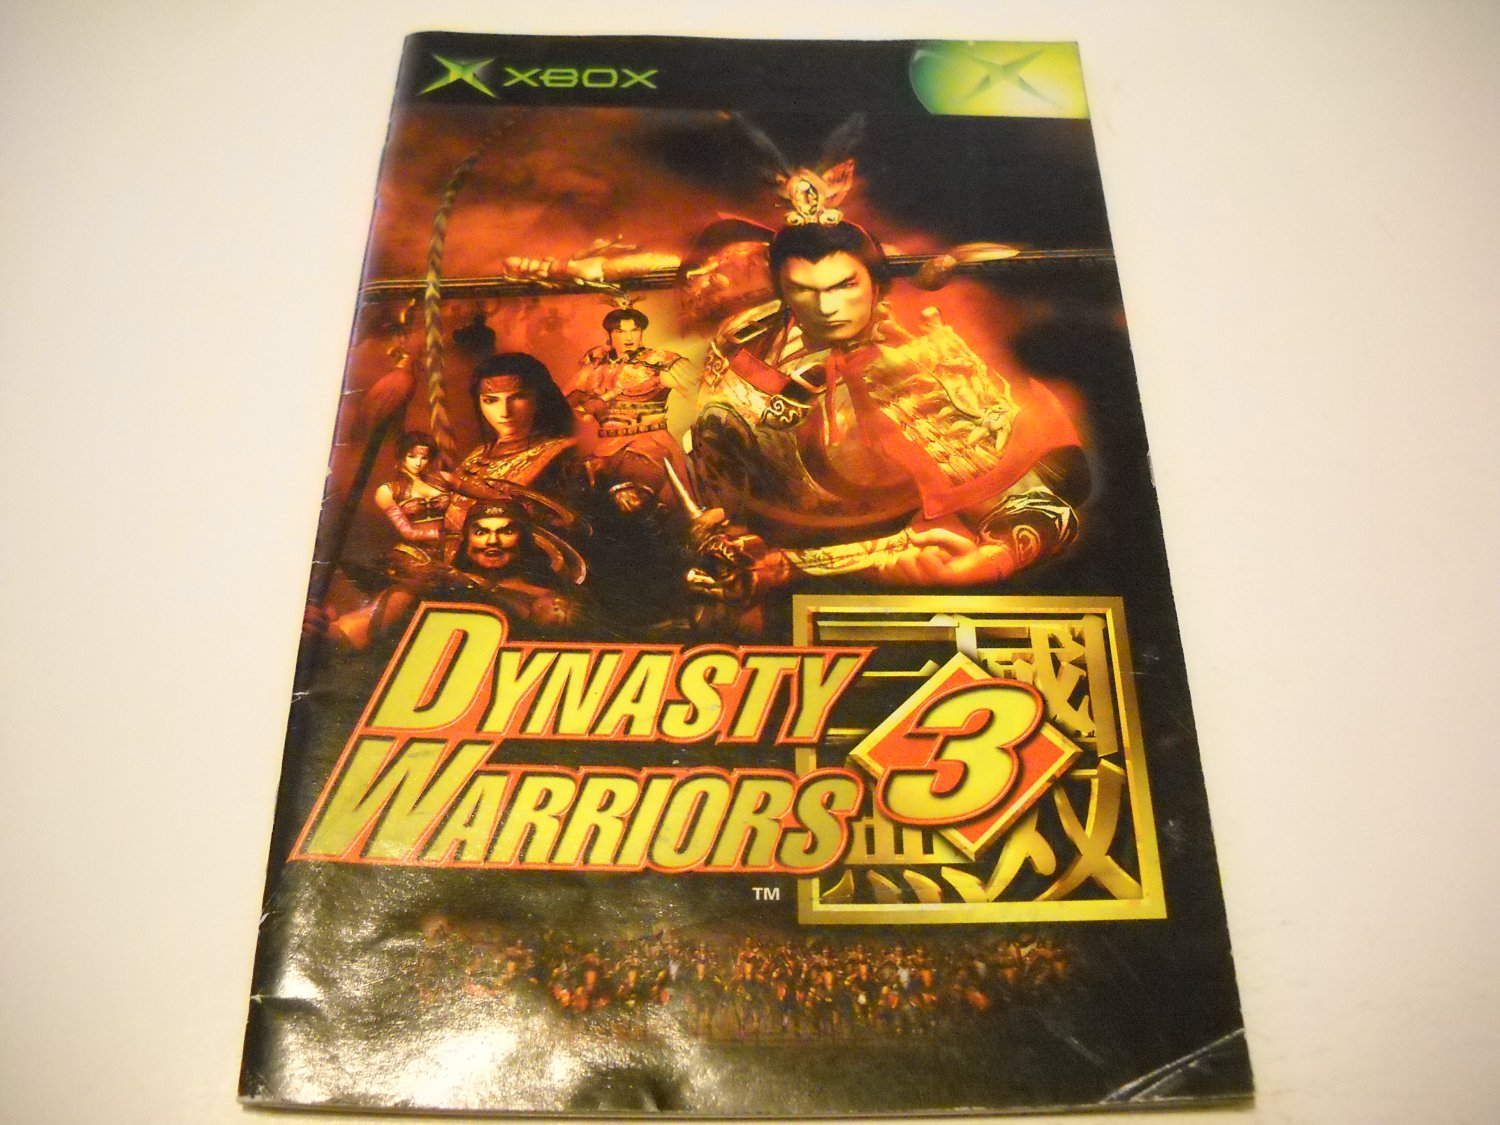 Manual ONLY ~  for Dynasty Warriors 3   Xbox